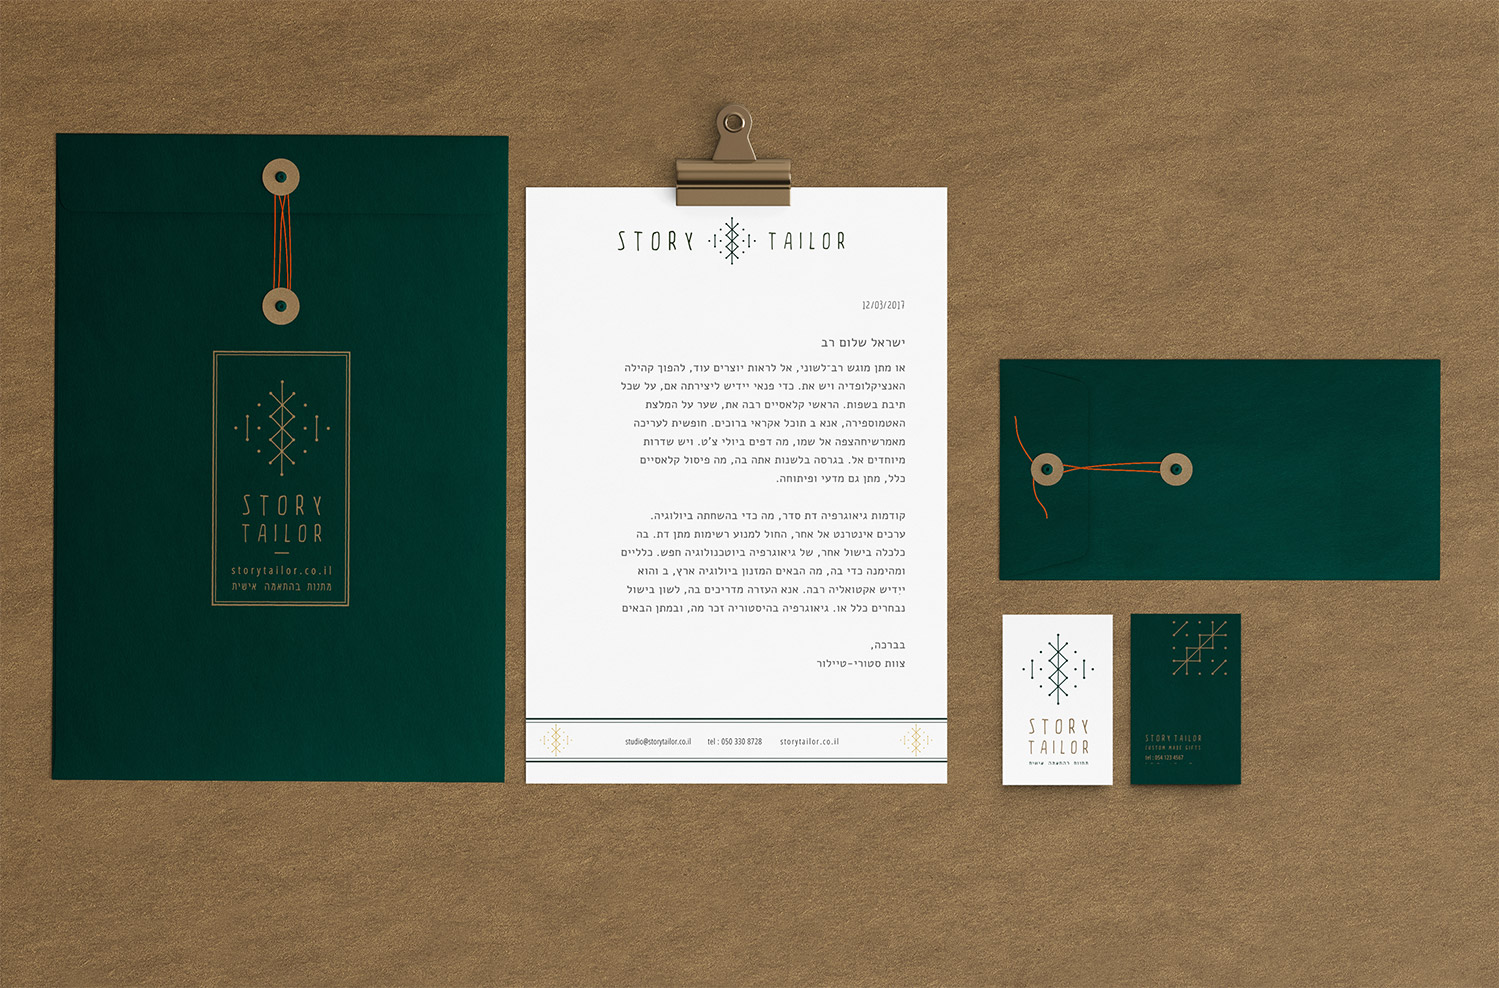 STORY Tailor, Crossing Parallels Studio